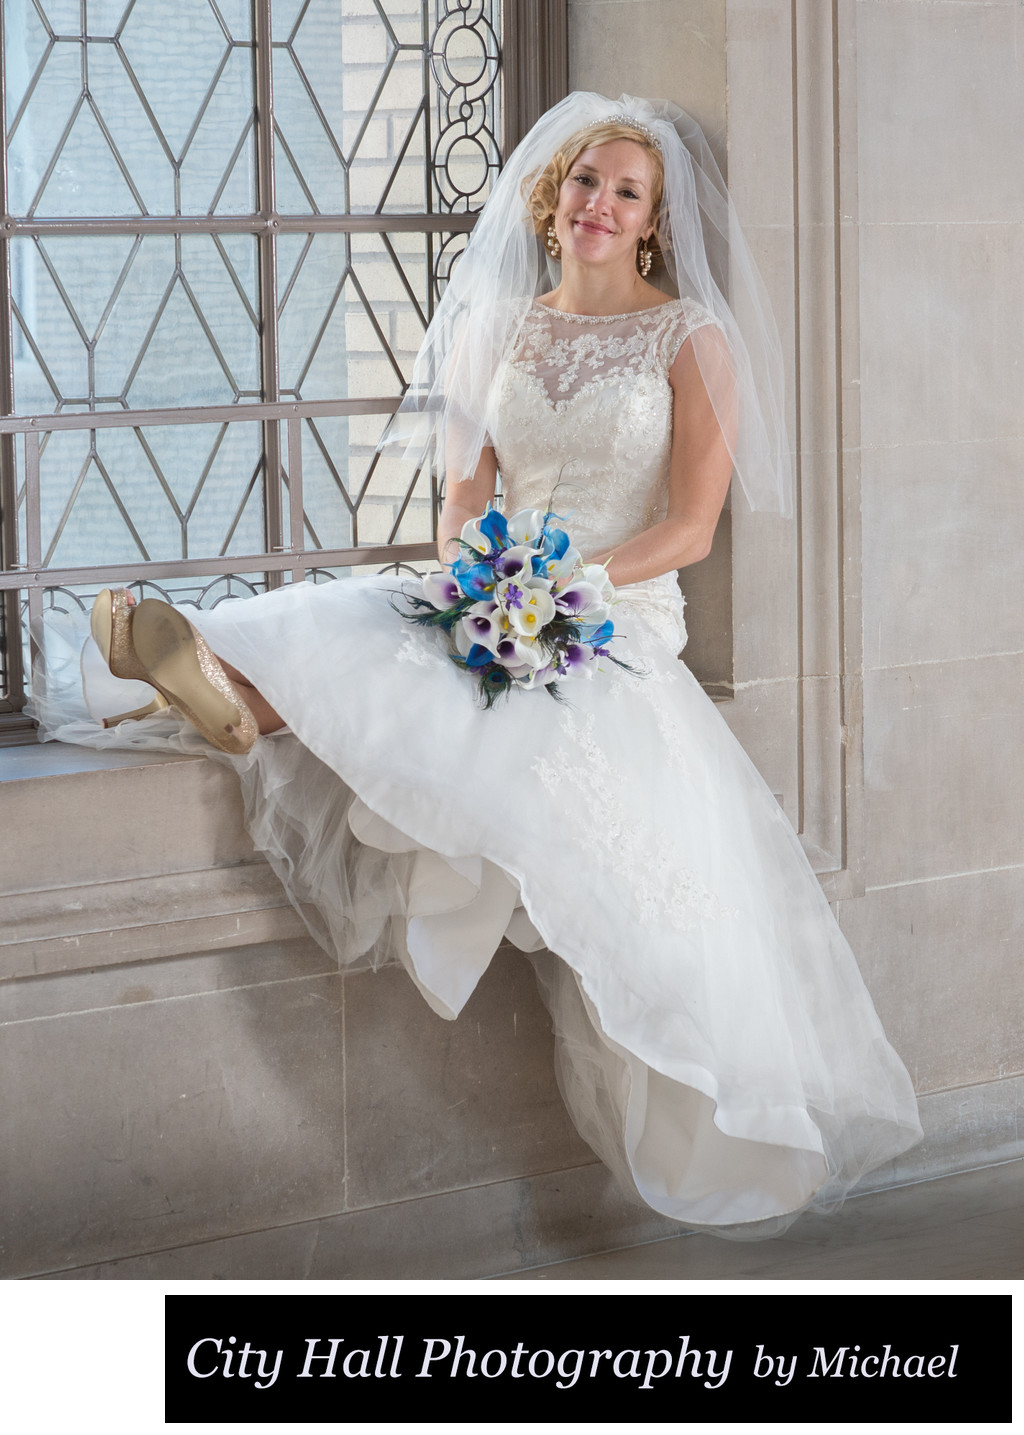 Cute Bridal Portrait Sitting on a City Hall window